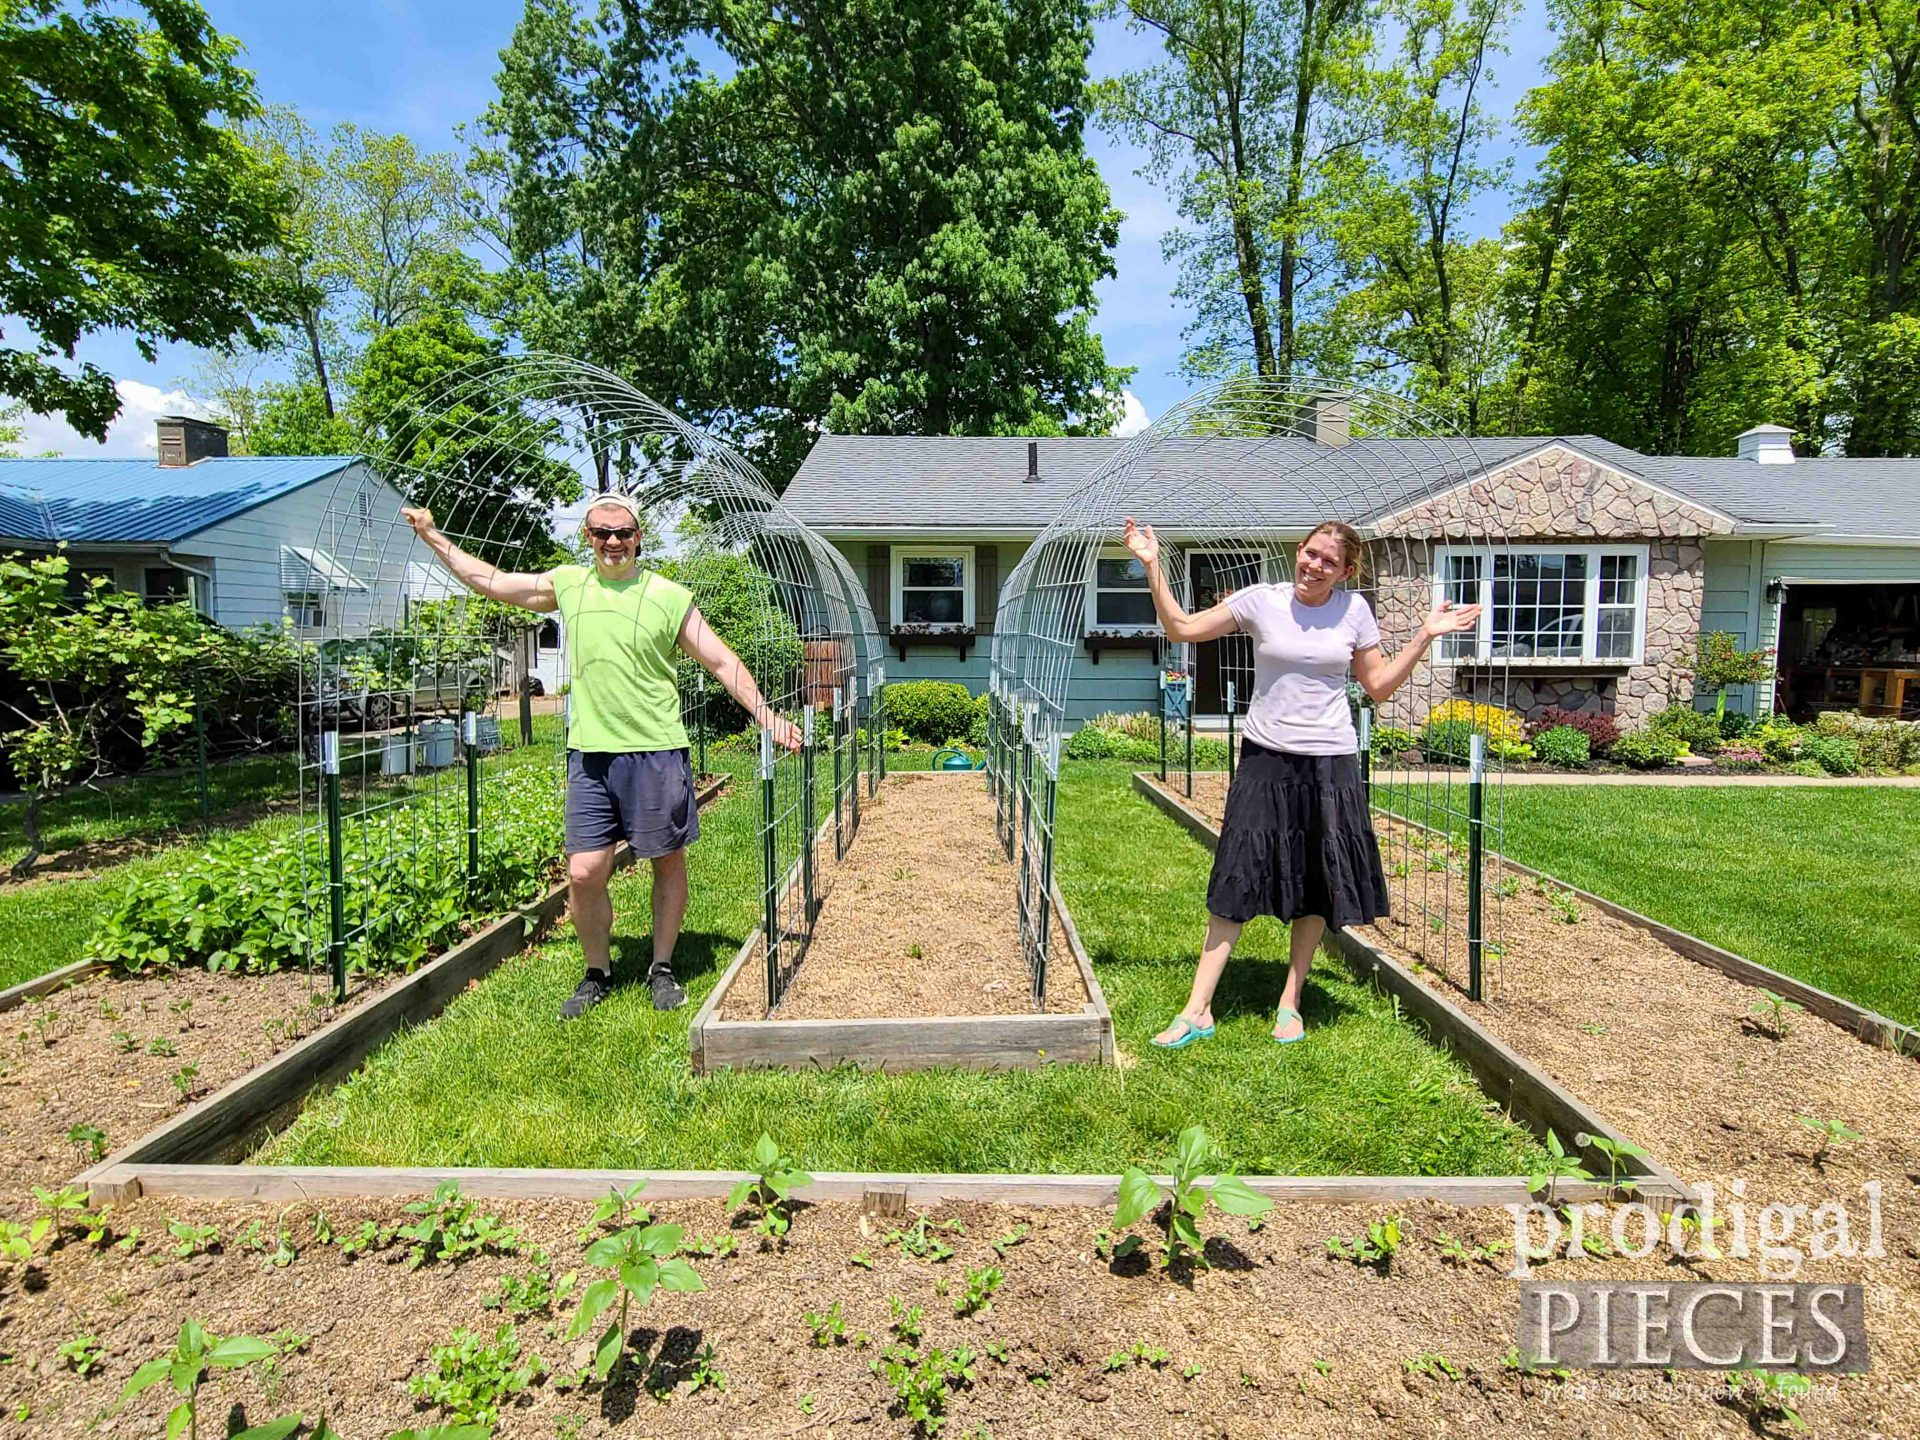 JC & Larissa of Prodigal Pieces with Finished Arched Garden Trellis | prodigalpieces.com #prodigalpieces